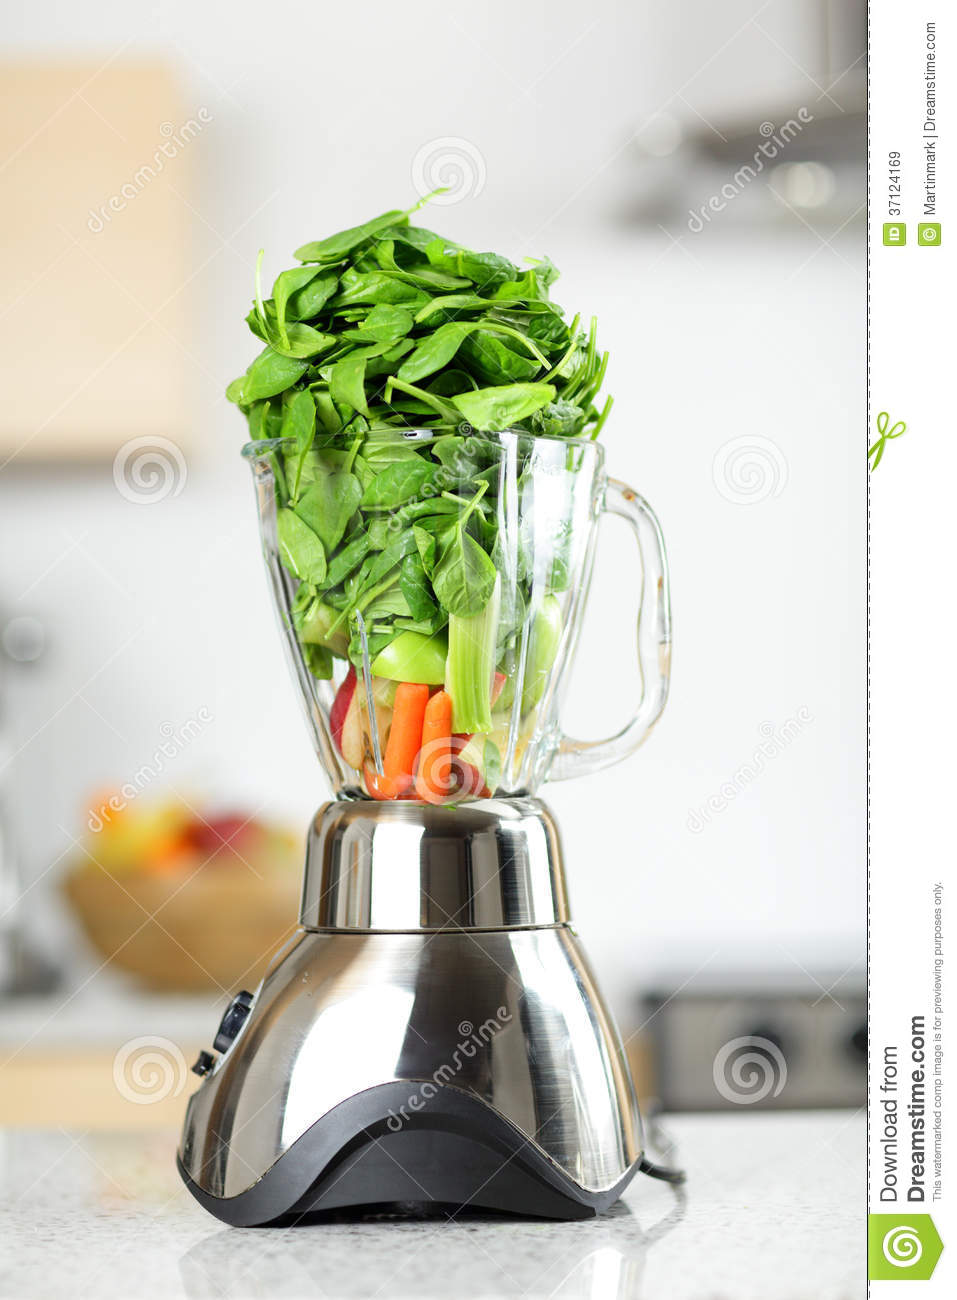 green vegetable smoothie in blender royalty free stock images image 37124169. Black Bedroom Furniture Sets. Home Design Ideas